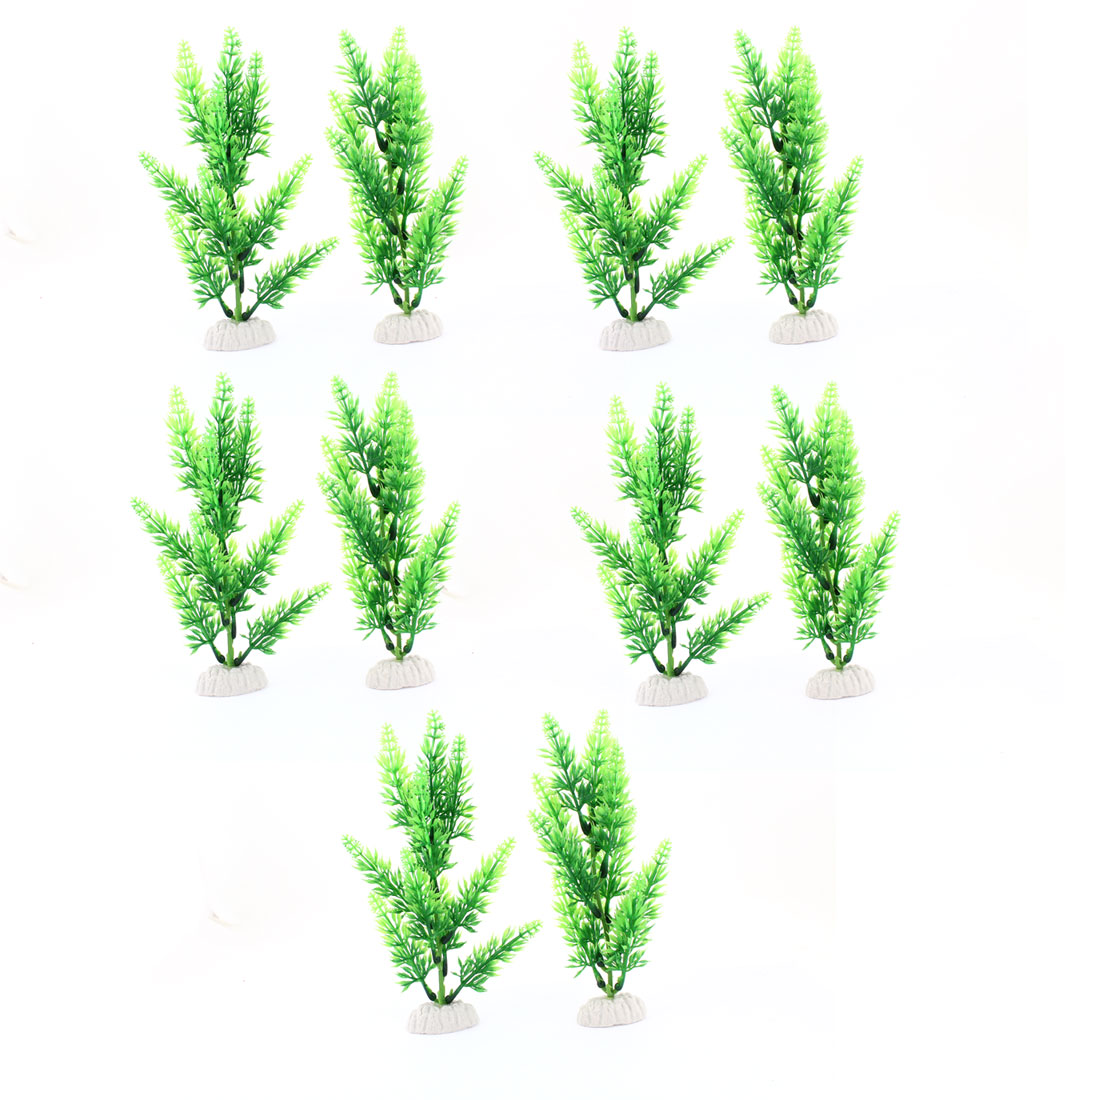 "10 Pcs 7.5"" Height Green Plastic Grass Plants Decoration for Fish Tank"